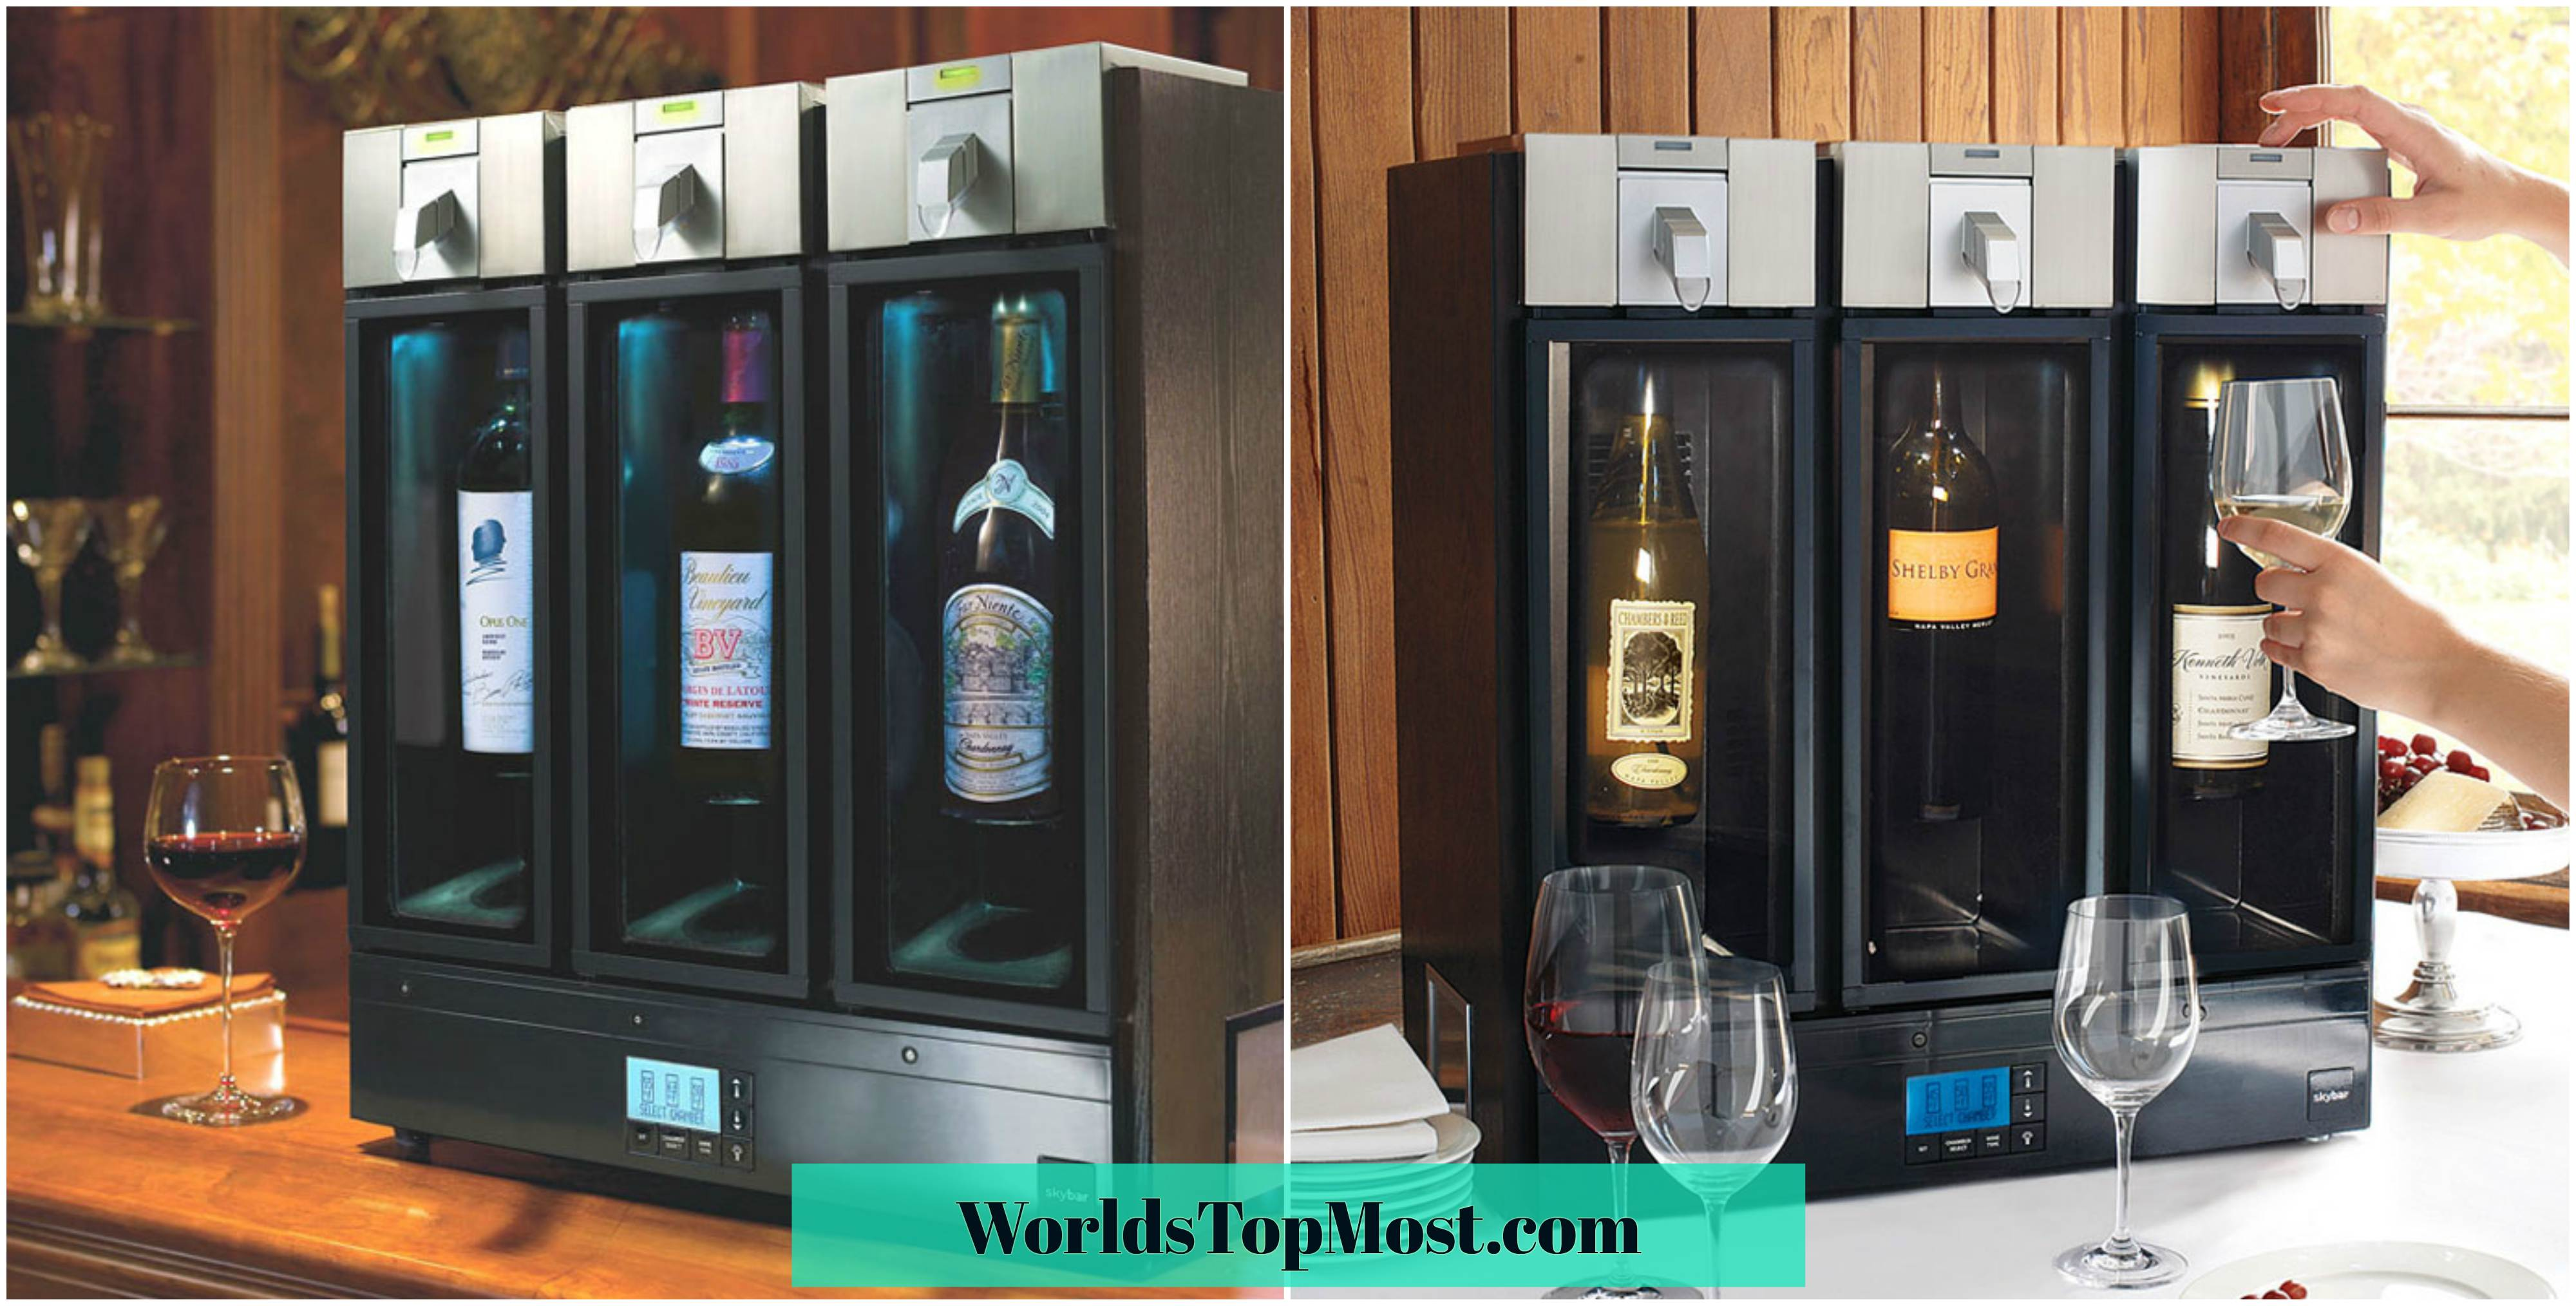 ... Most Expensive Kitchen Gadgets In 2017. 10. Skybars Wine Preservation  And Serving System (Price  $1000)